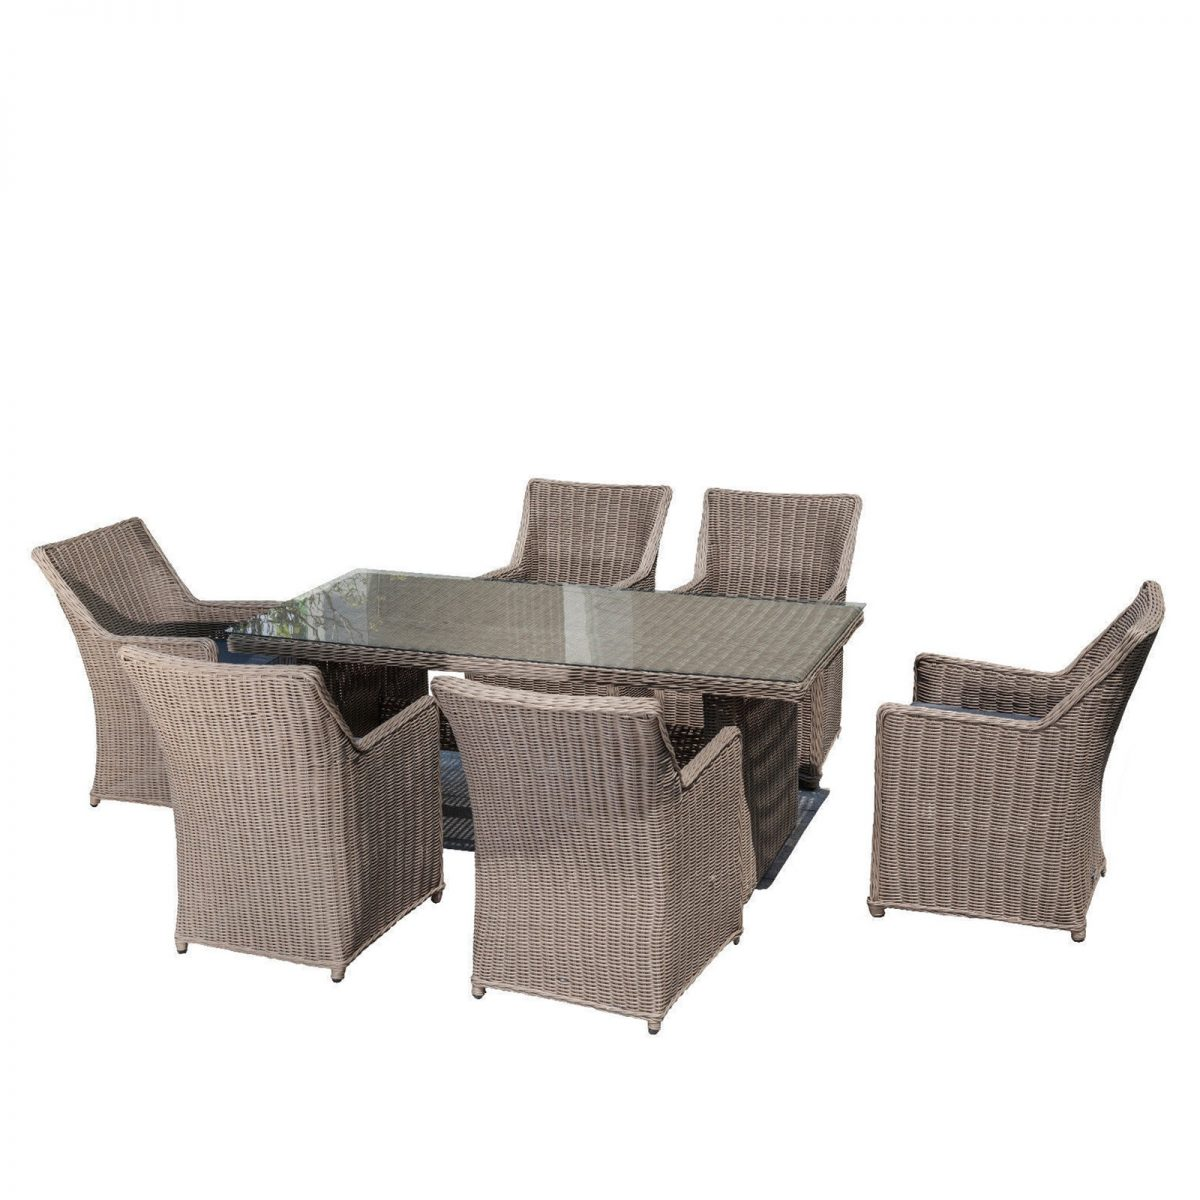 7 Piece Outdoor Rattan Wicker Dining Table Set